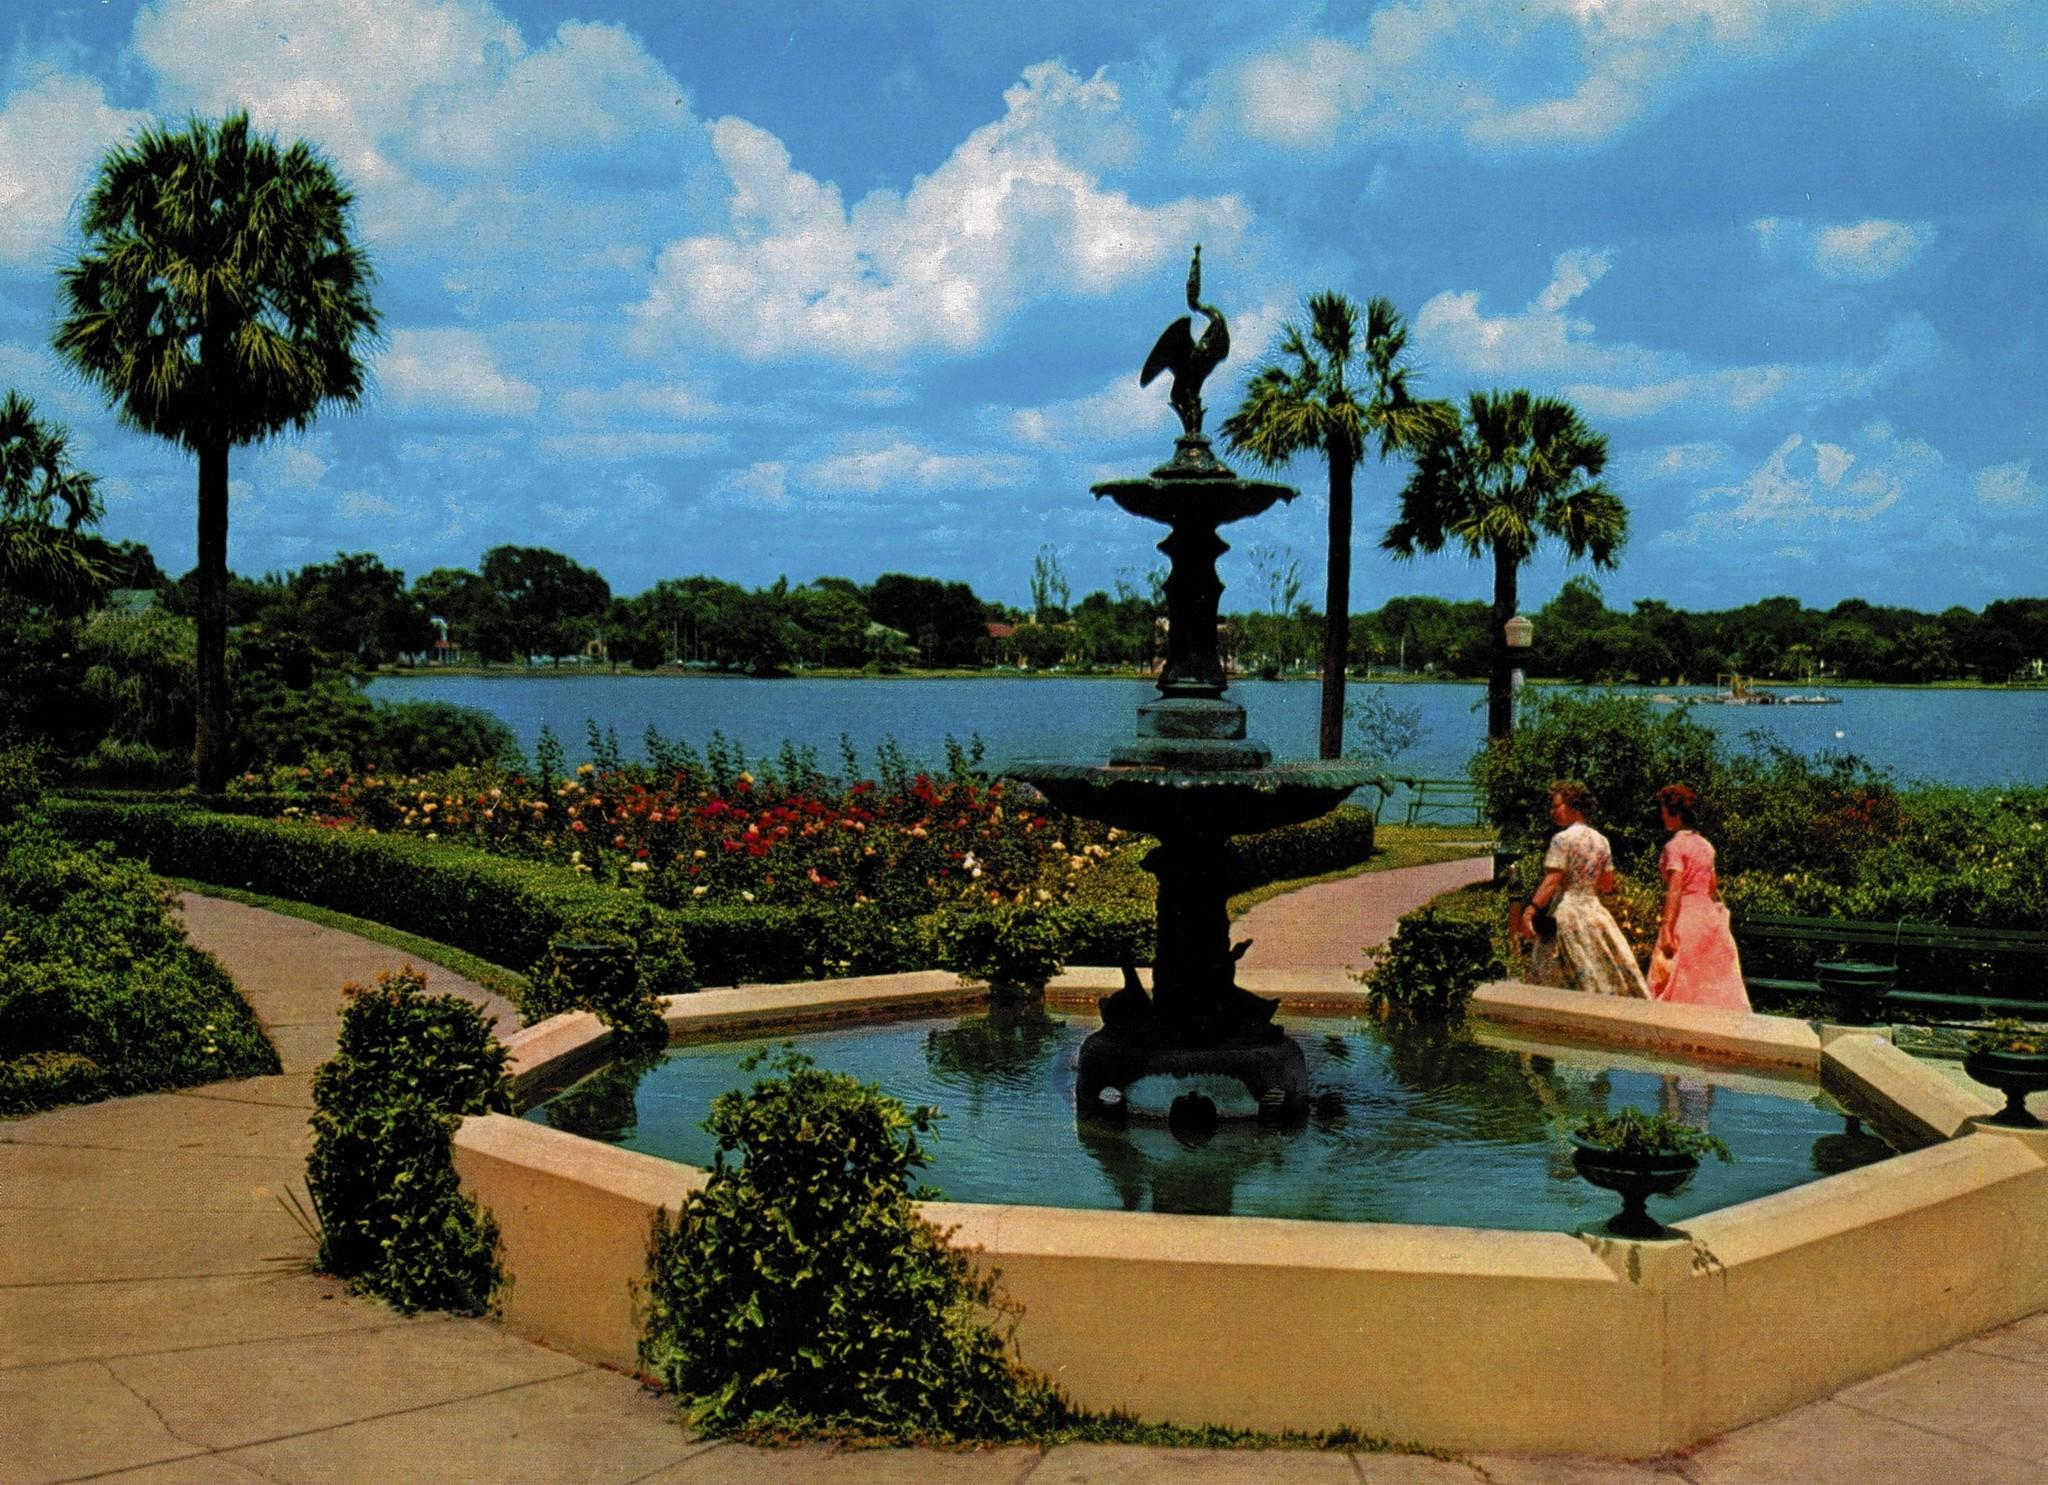 Two women walk past the 1914 Sperry Fountain at Orlando's Lake Eola Park in a scene on a 1950s postcard, before the construction of the landmark green-domed fountain in the middle of the lake.